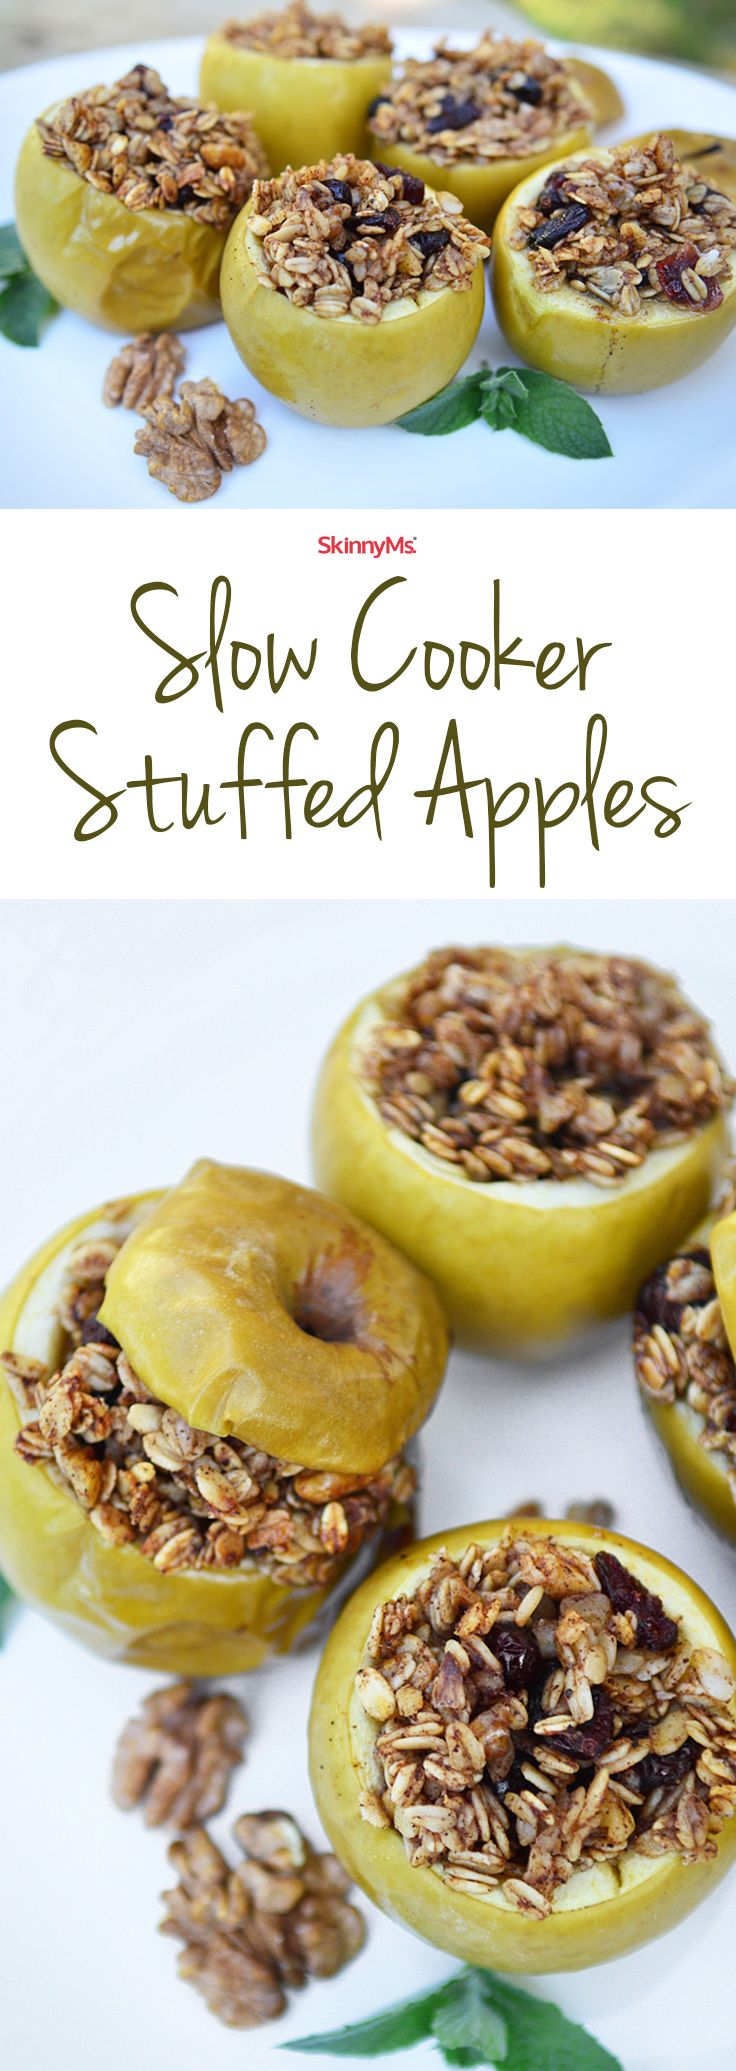 Our Slow Cooker Stuffed Apples are super simple to make, and you probably have most of the ingredients lying around the house!